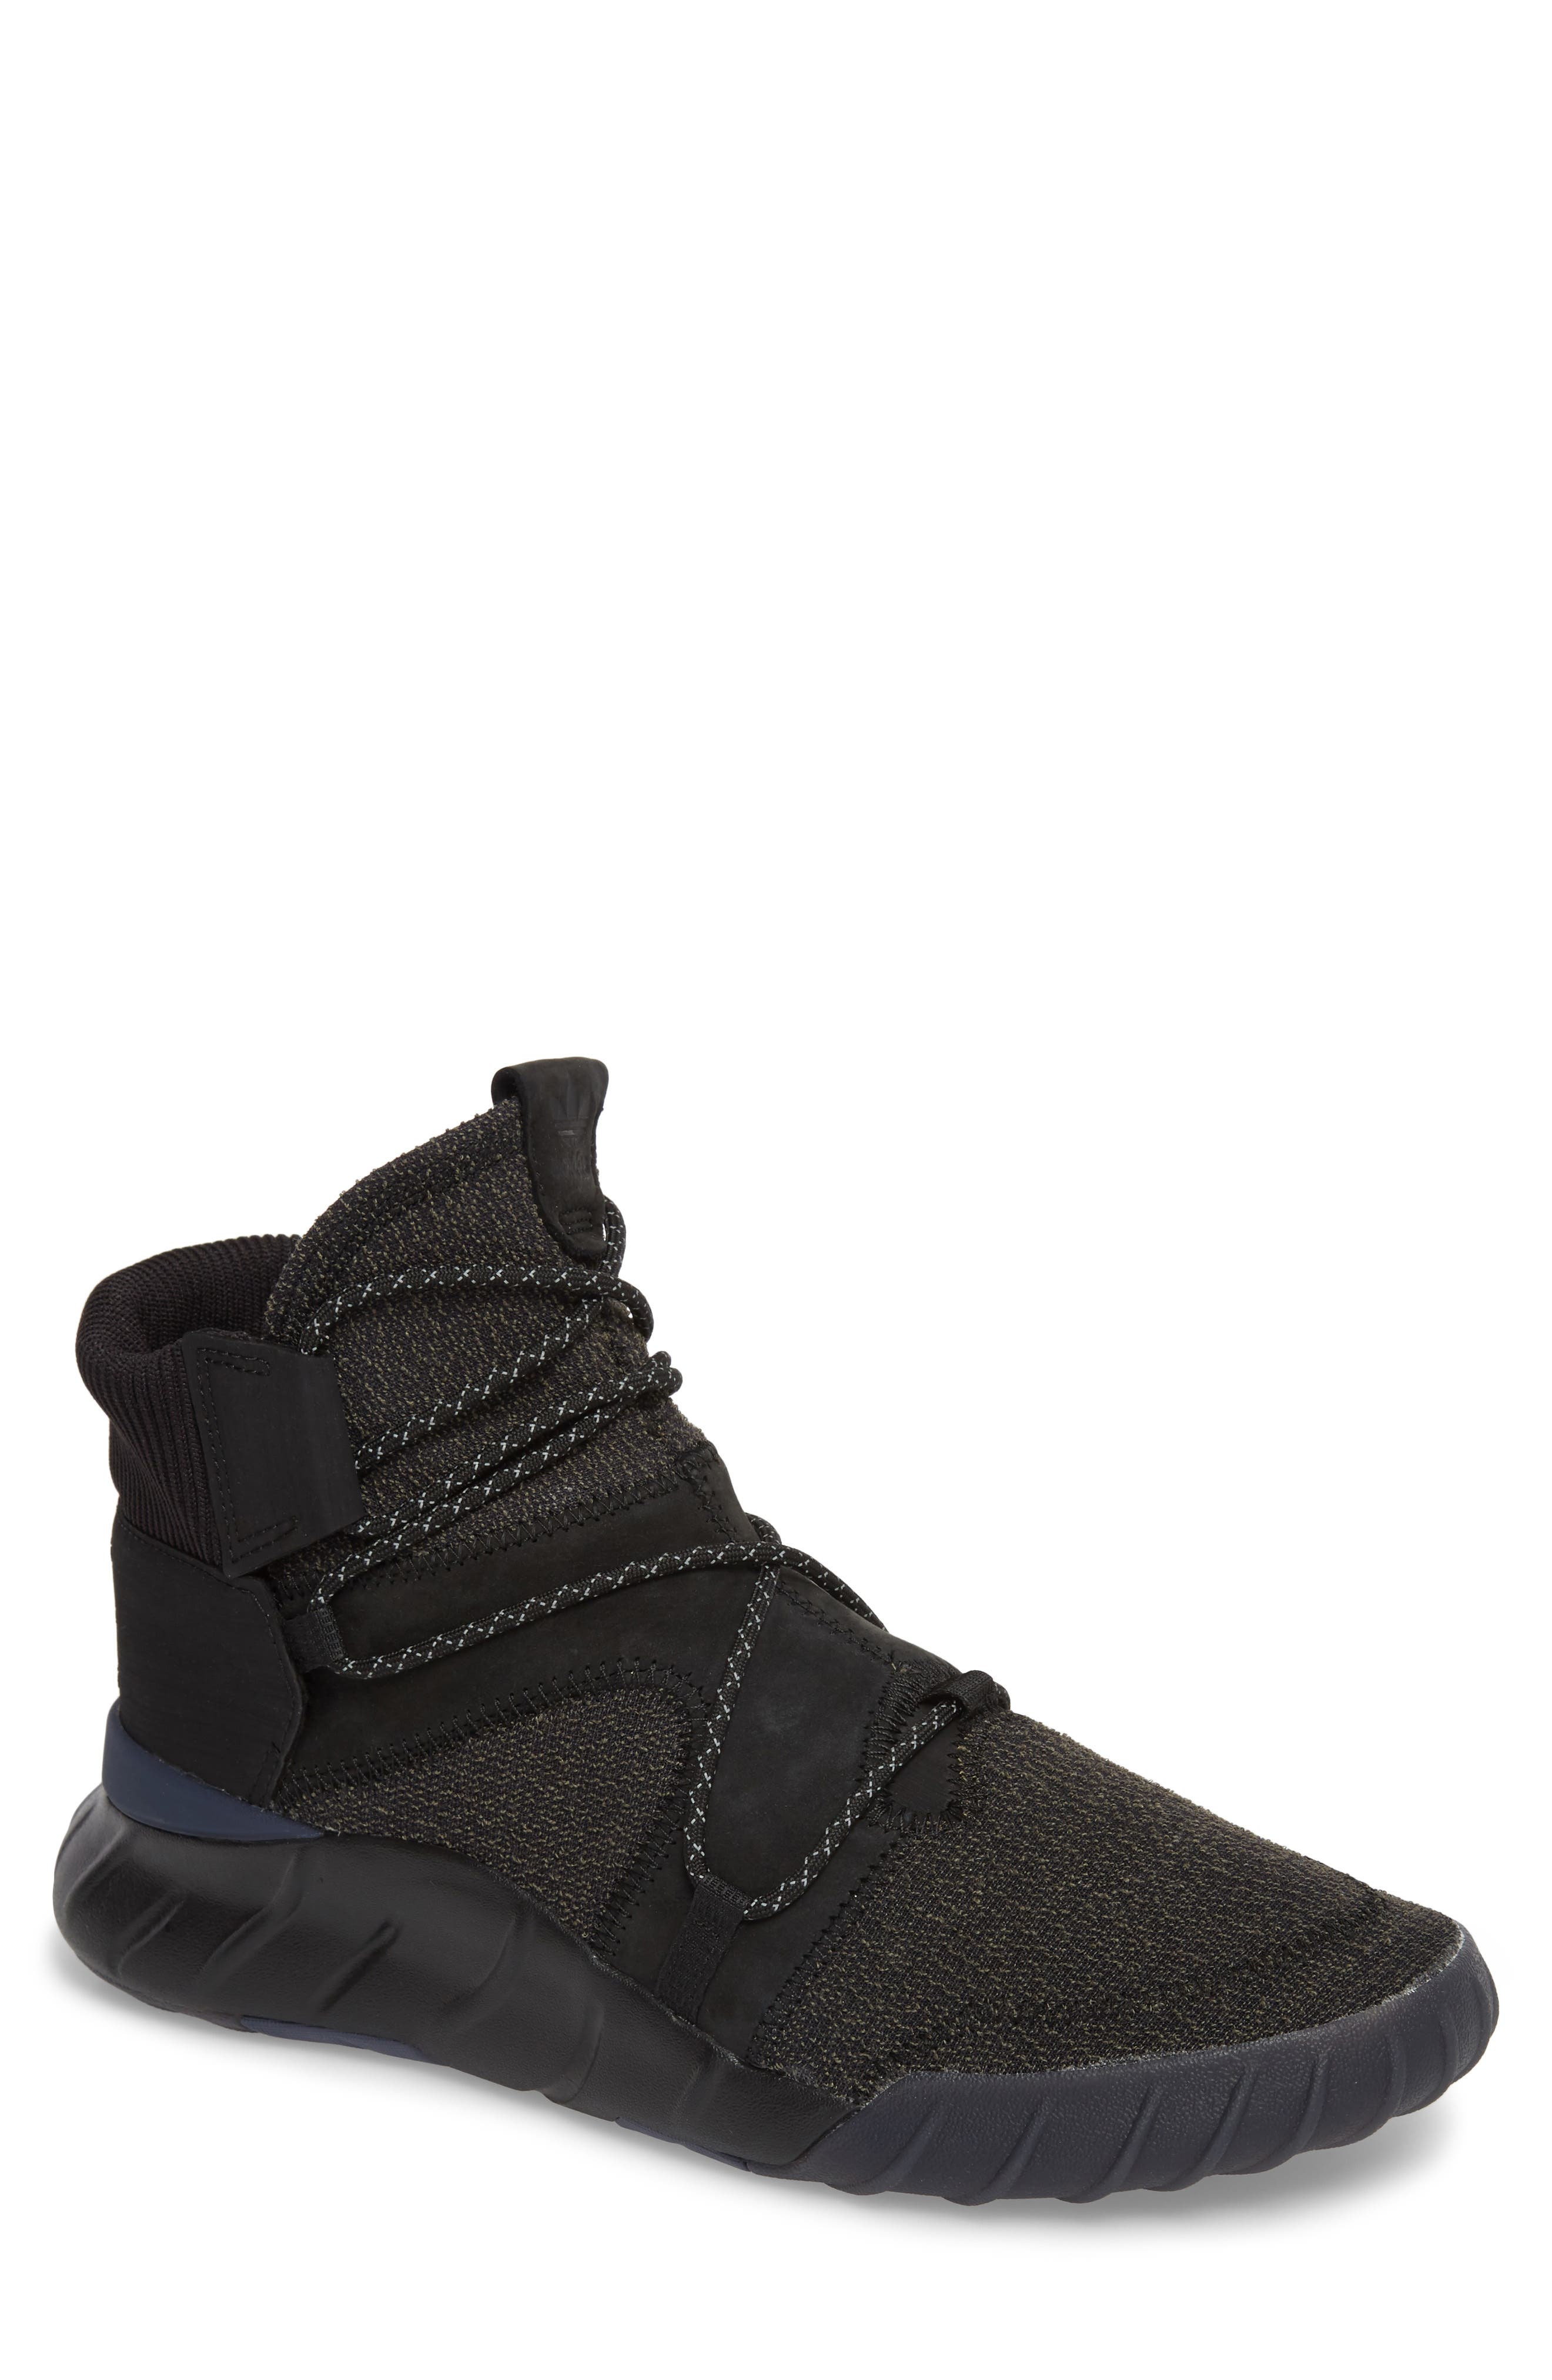 Tubular X 2.0 High Top Sneaker,                         Main,                         color, Core Black/ Blue